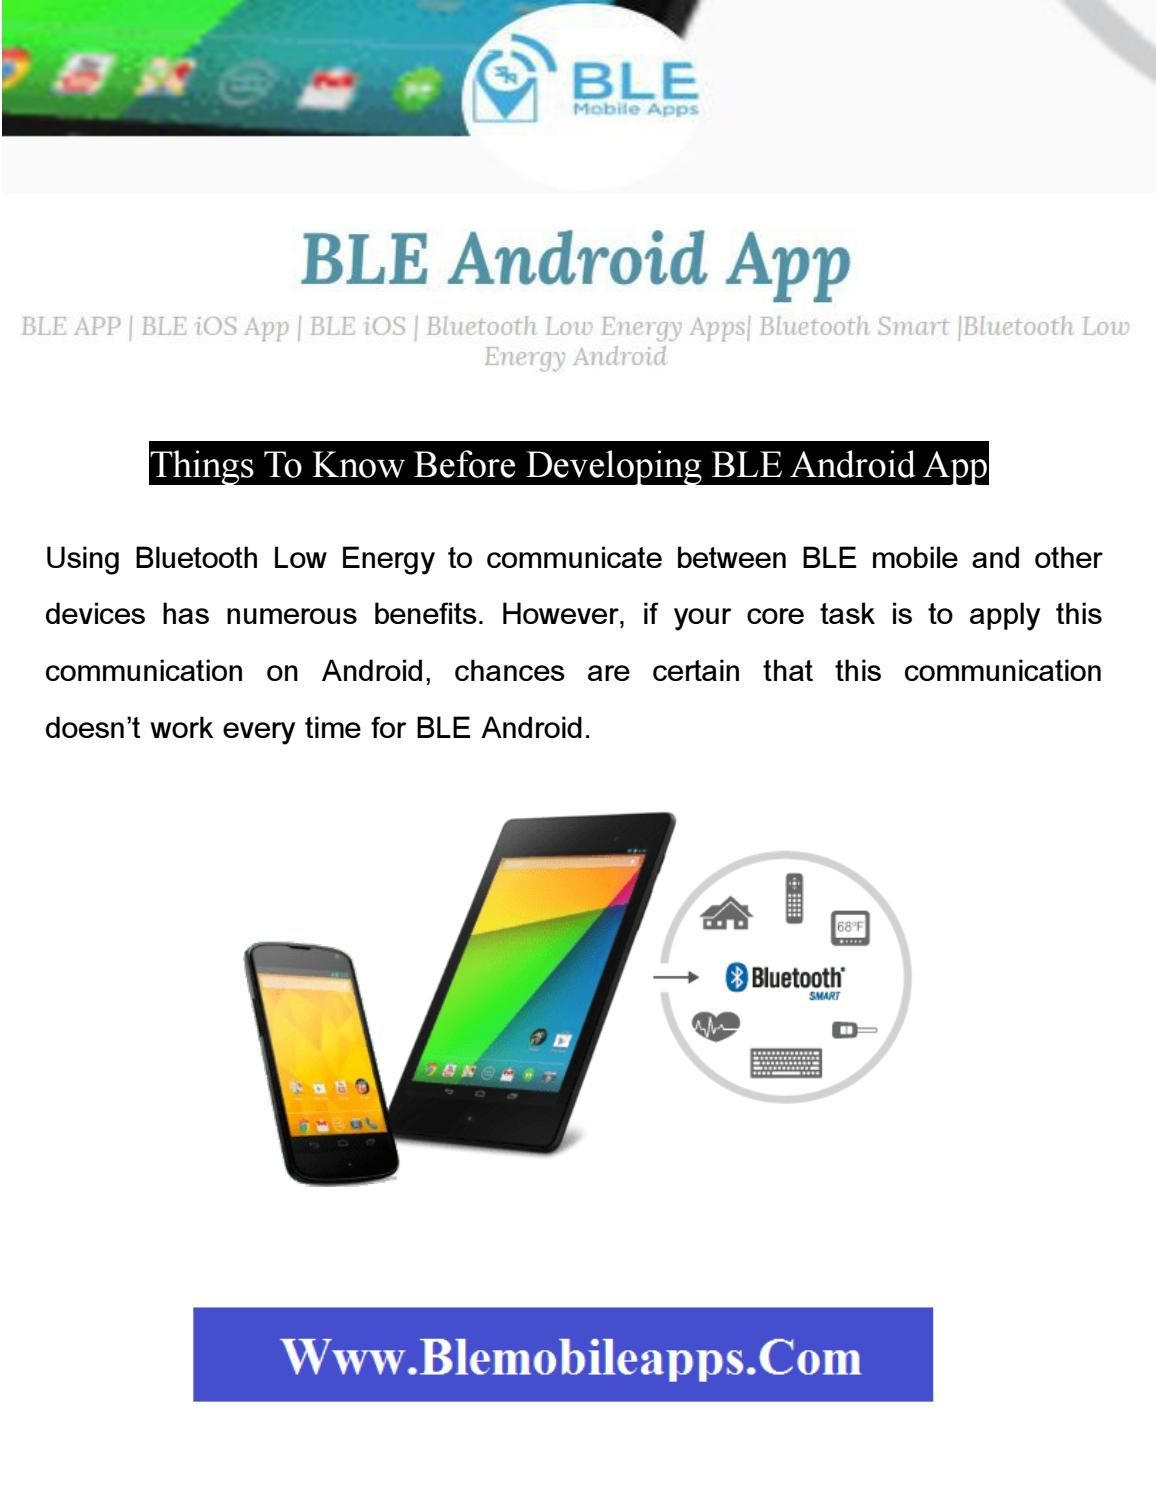 Things To Know Before Developing Ble Android App Mobile App Development Things To Know